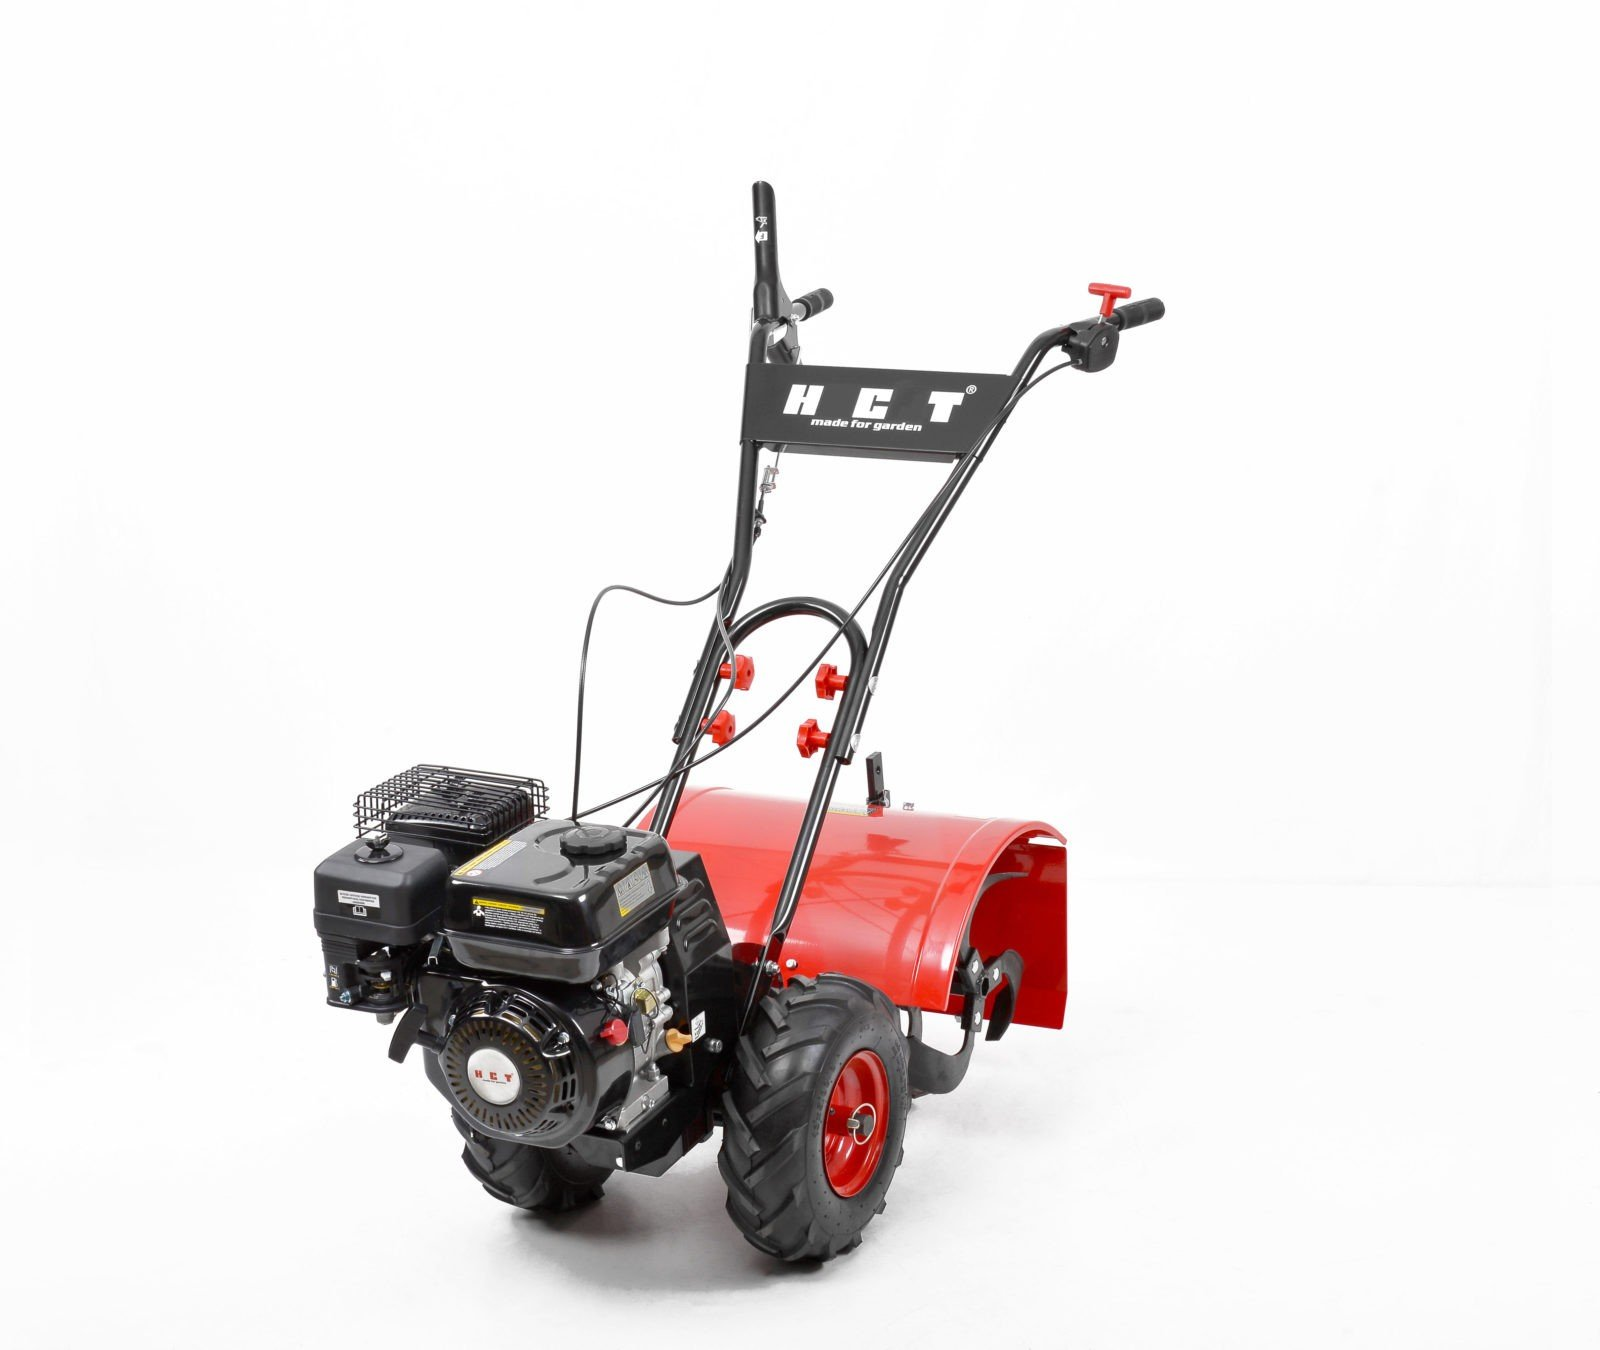 Motocultivador Gasolina 6.5hp HCT RTW 750